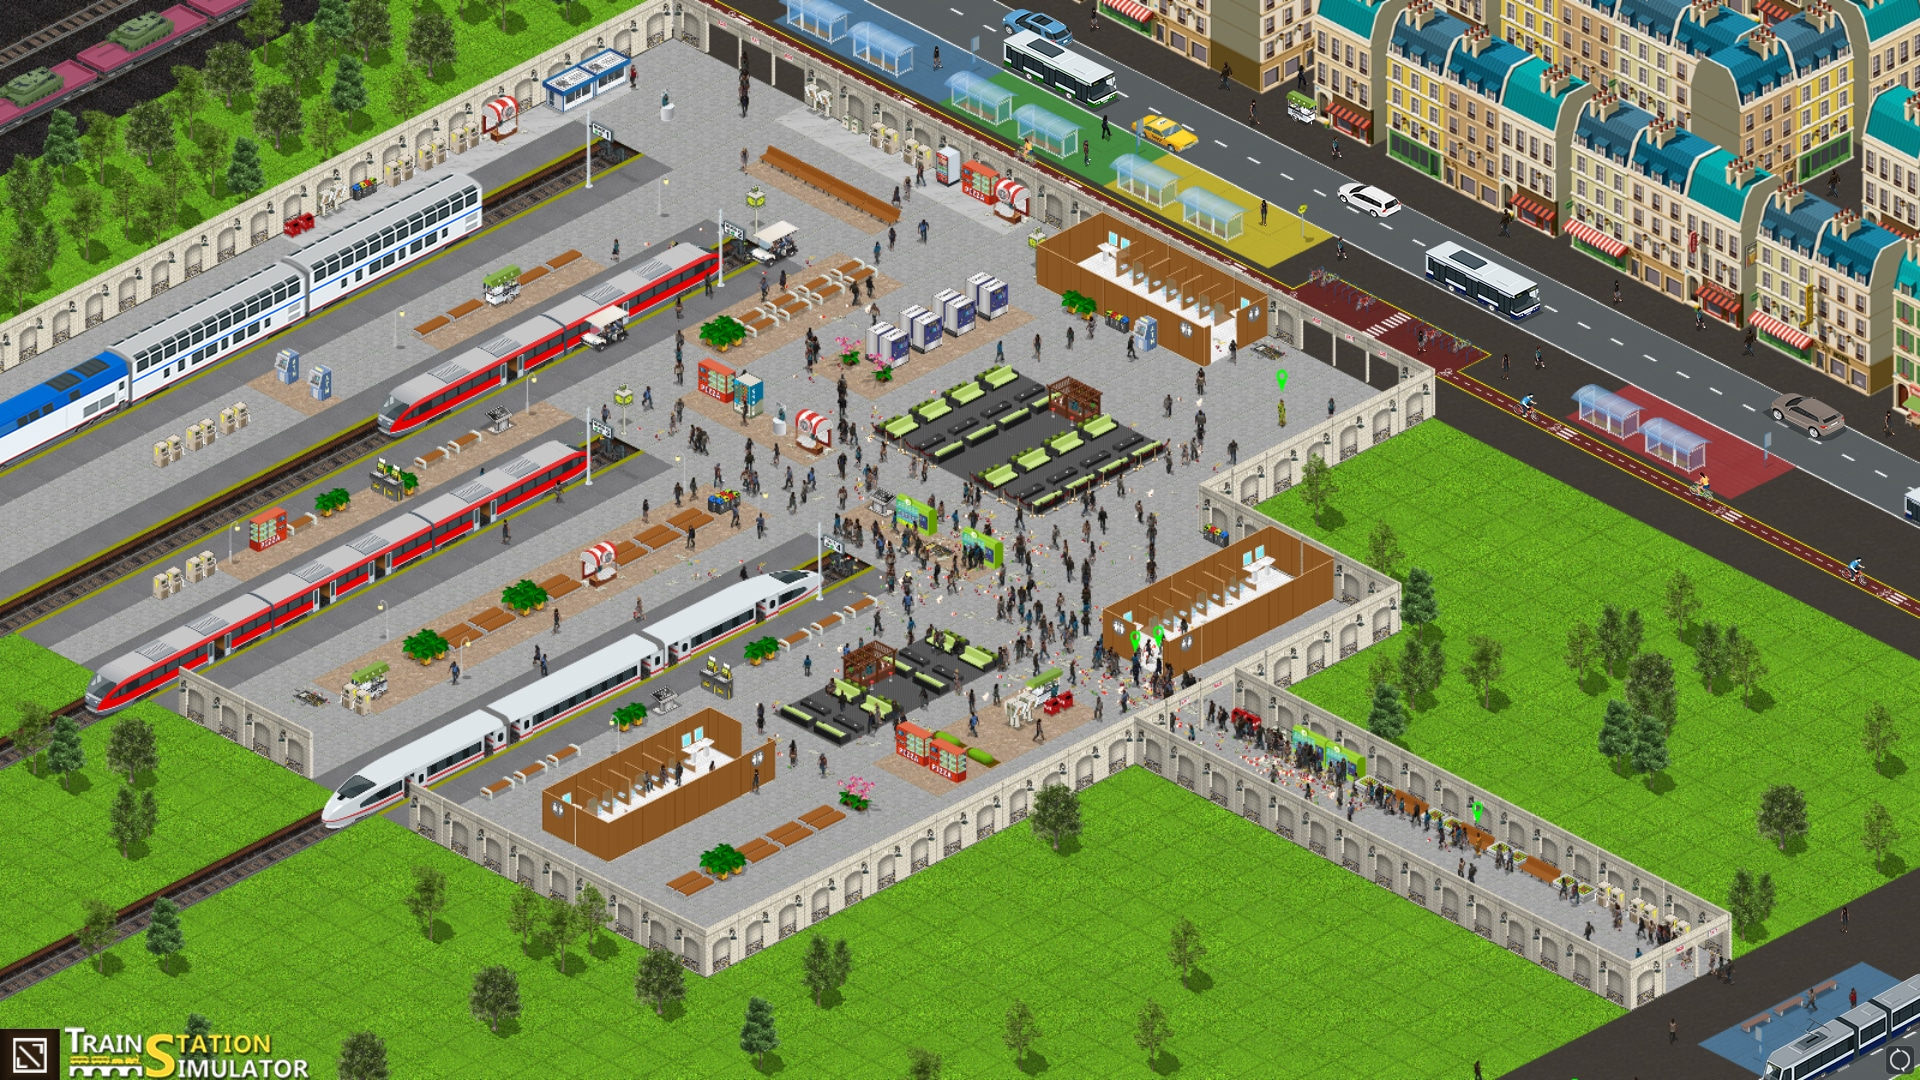 Train Station Simulator - FREE DOWNLOAD | CRACKED-GAMES.ORG